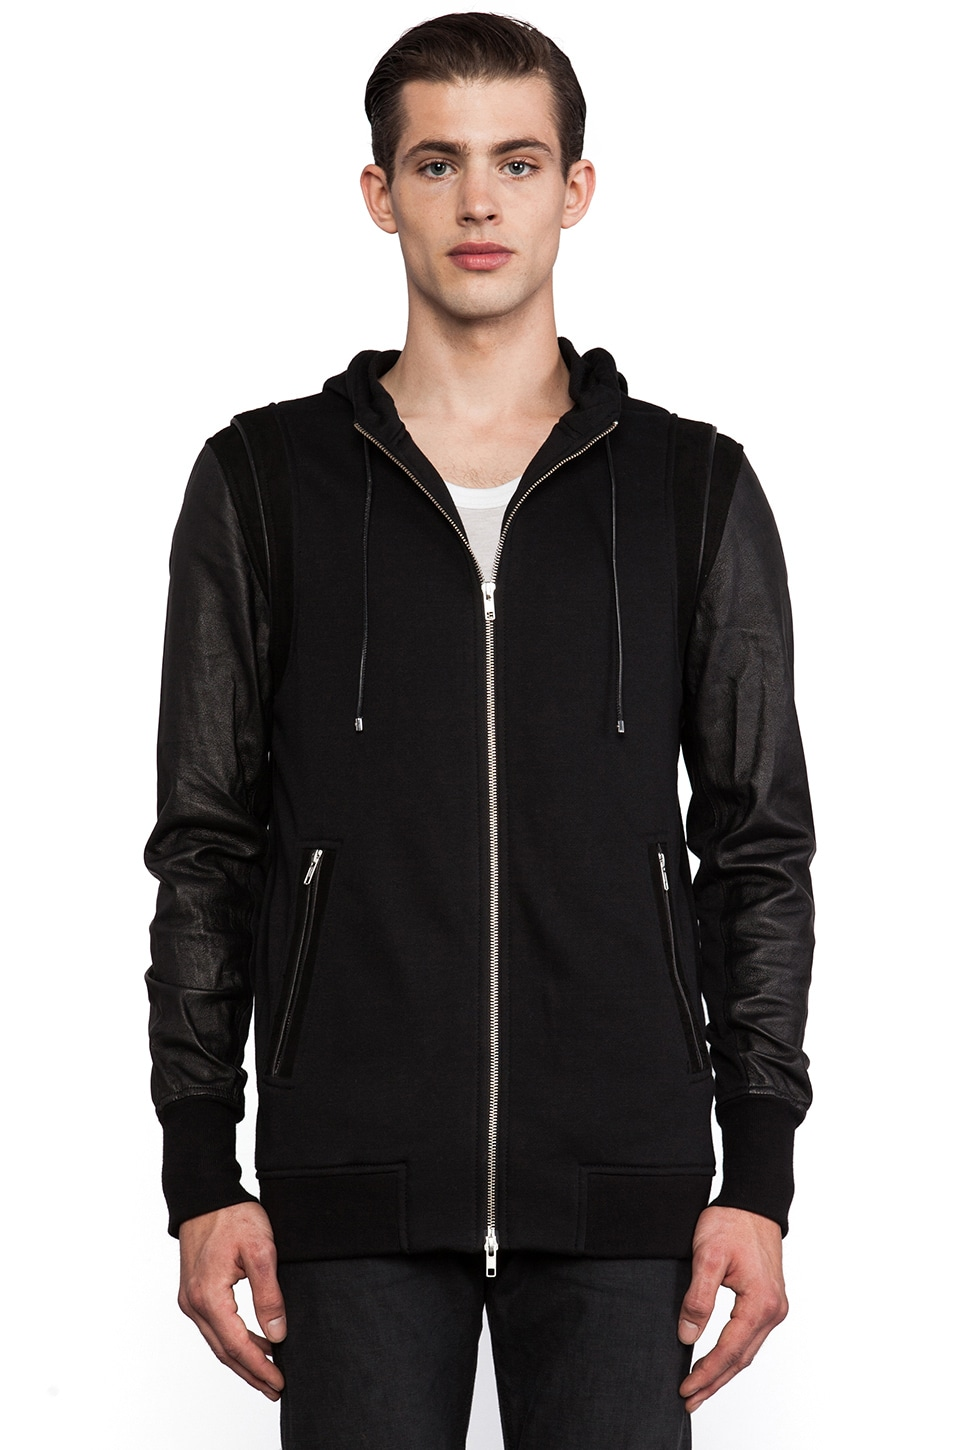 IRO Jerusha Sweatshirt Jacket in Black